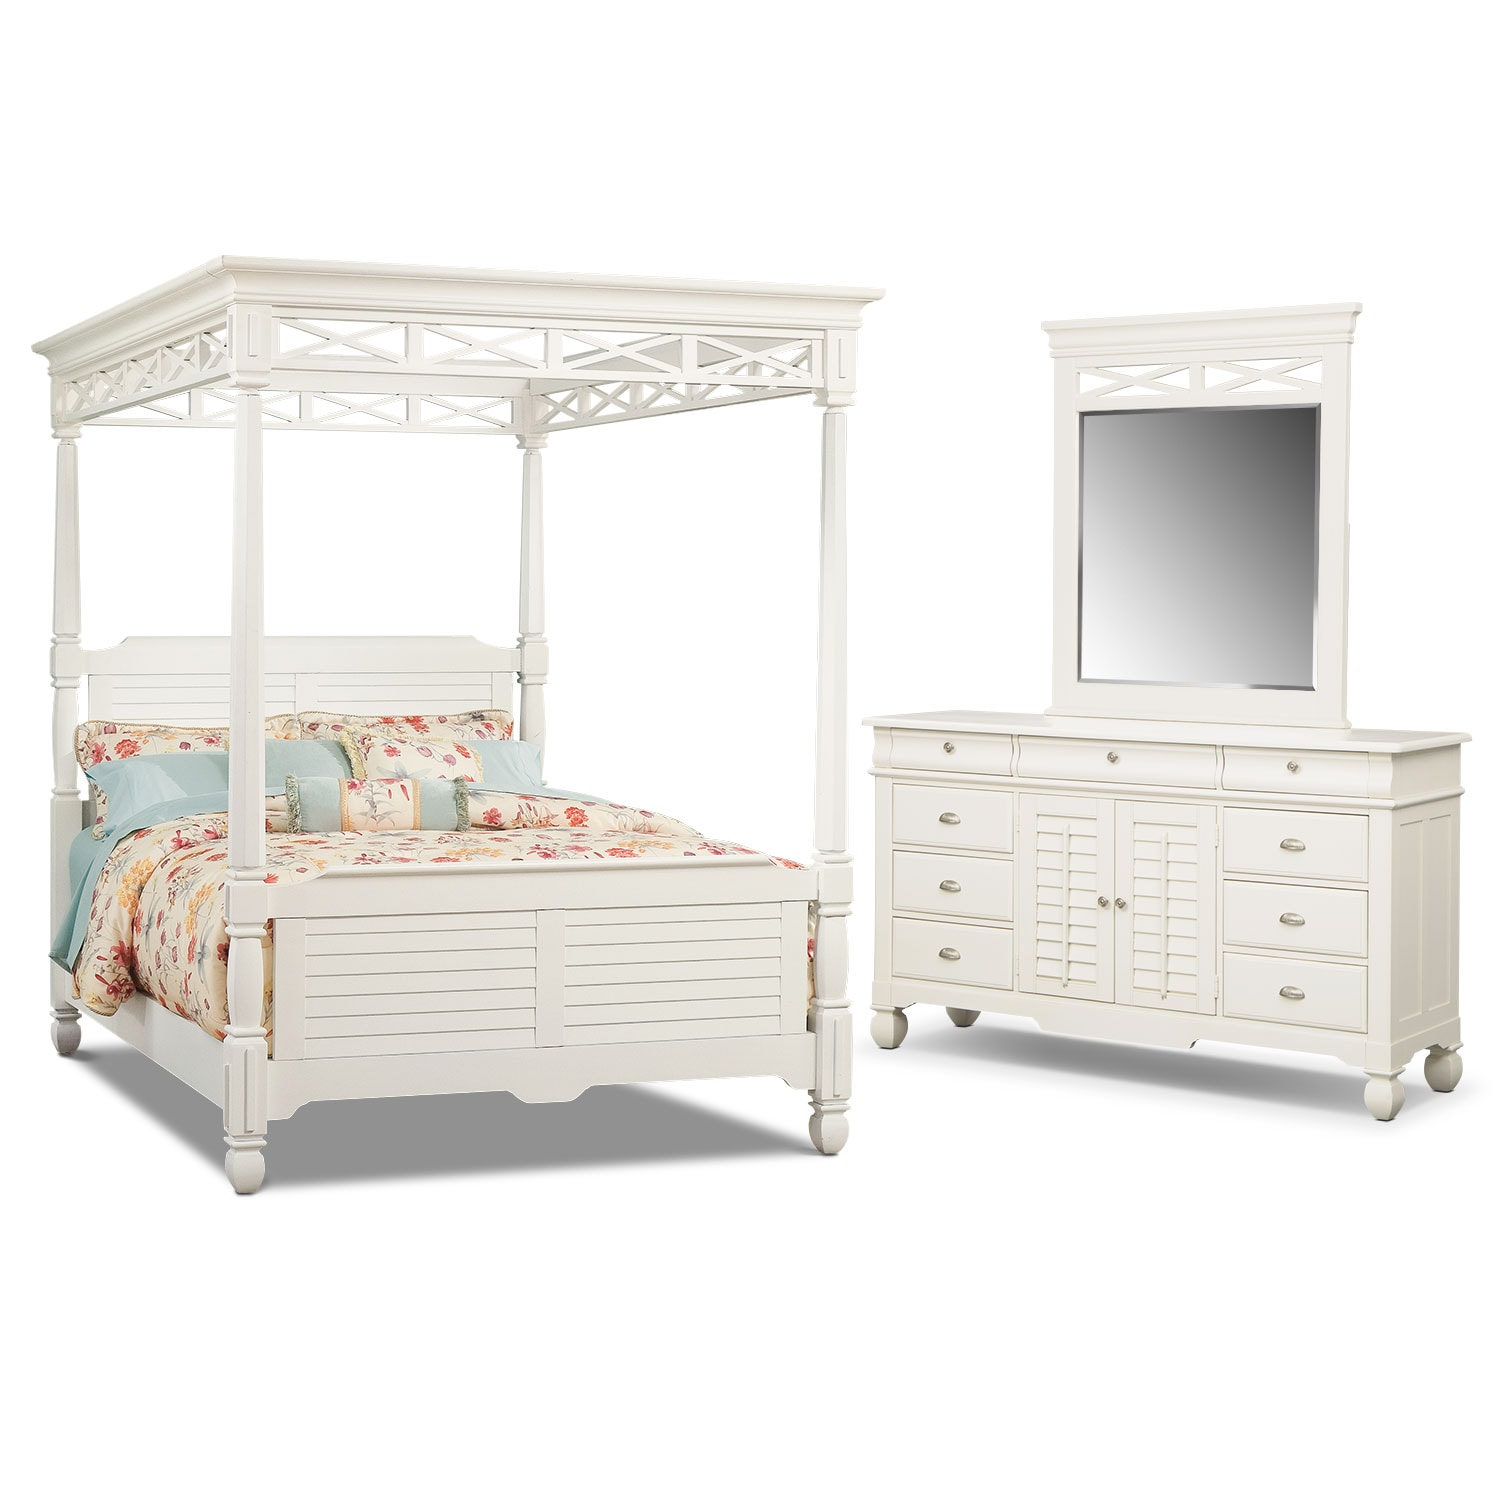 Plantation Cove 5-Piece Queen Canopy Bedroom Set - White